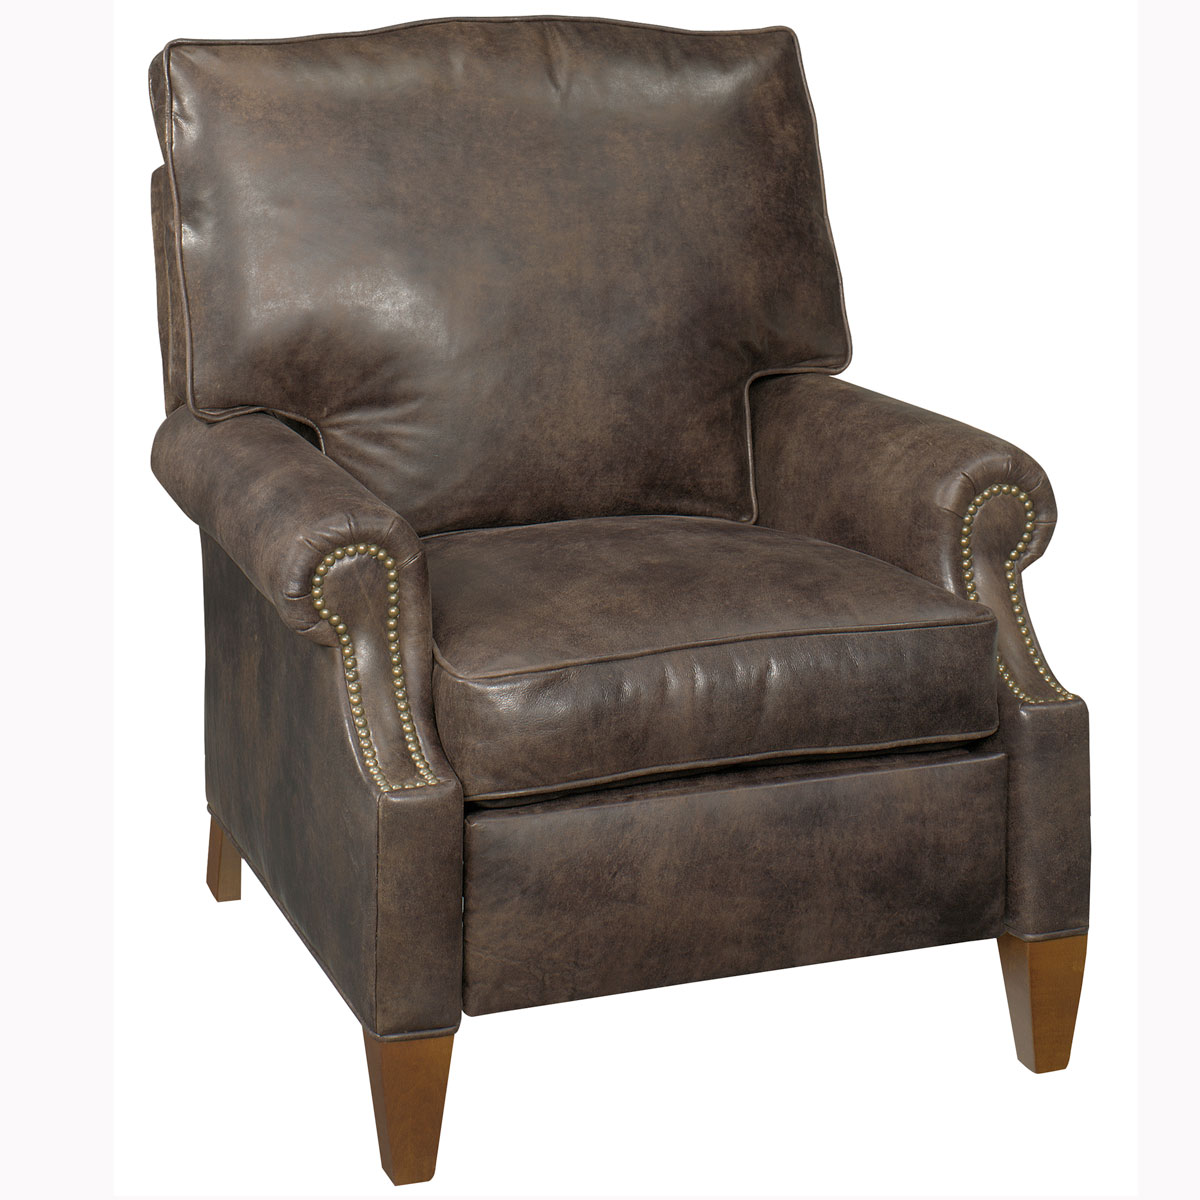 leather recliner chair carson designer style contemporary leather reclining chair